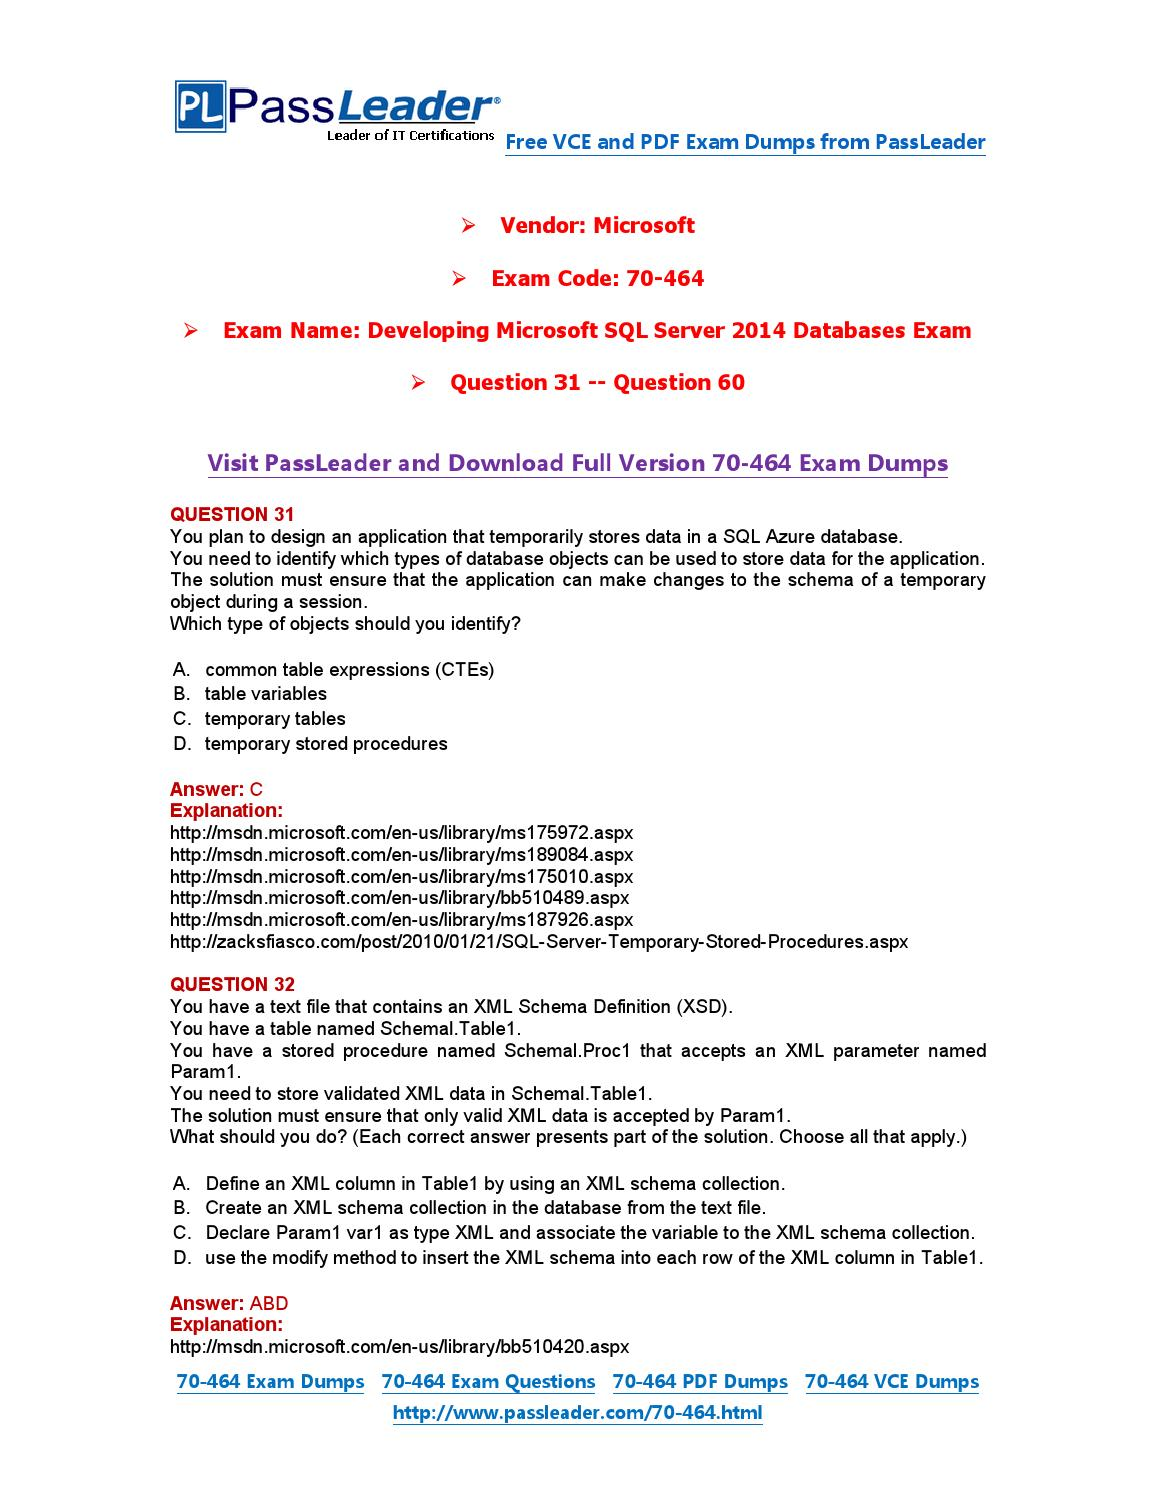 2016 New 70 464 Exam Dumps For Free Vce And Pdf 31 60 By Exam